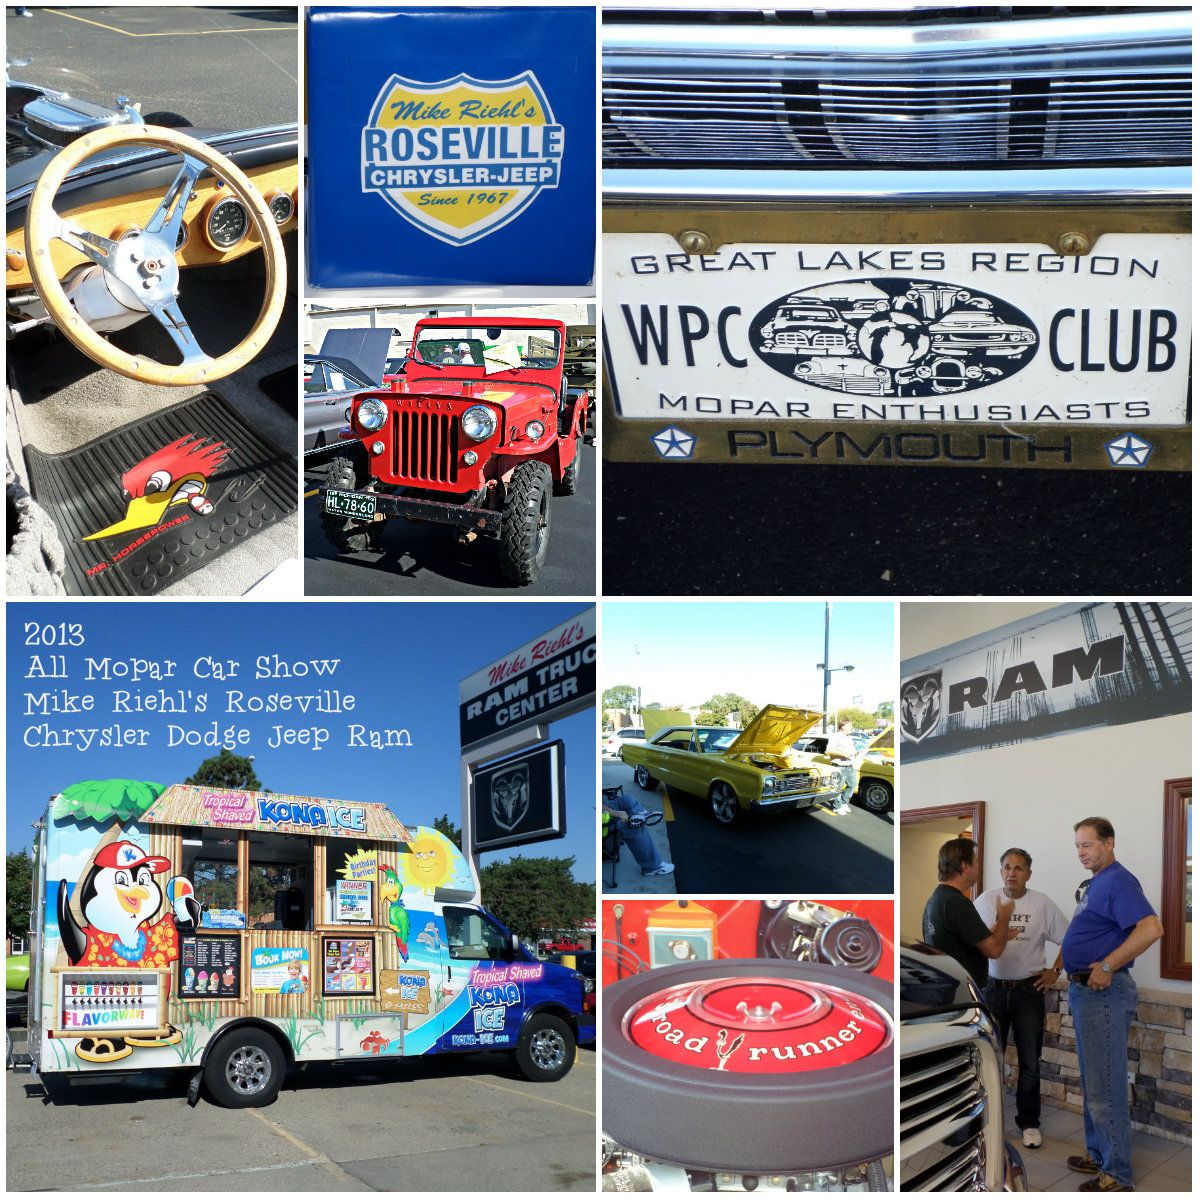 11th Annual All Mopar Car Show On Saturday September 27 Is From 8